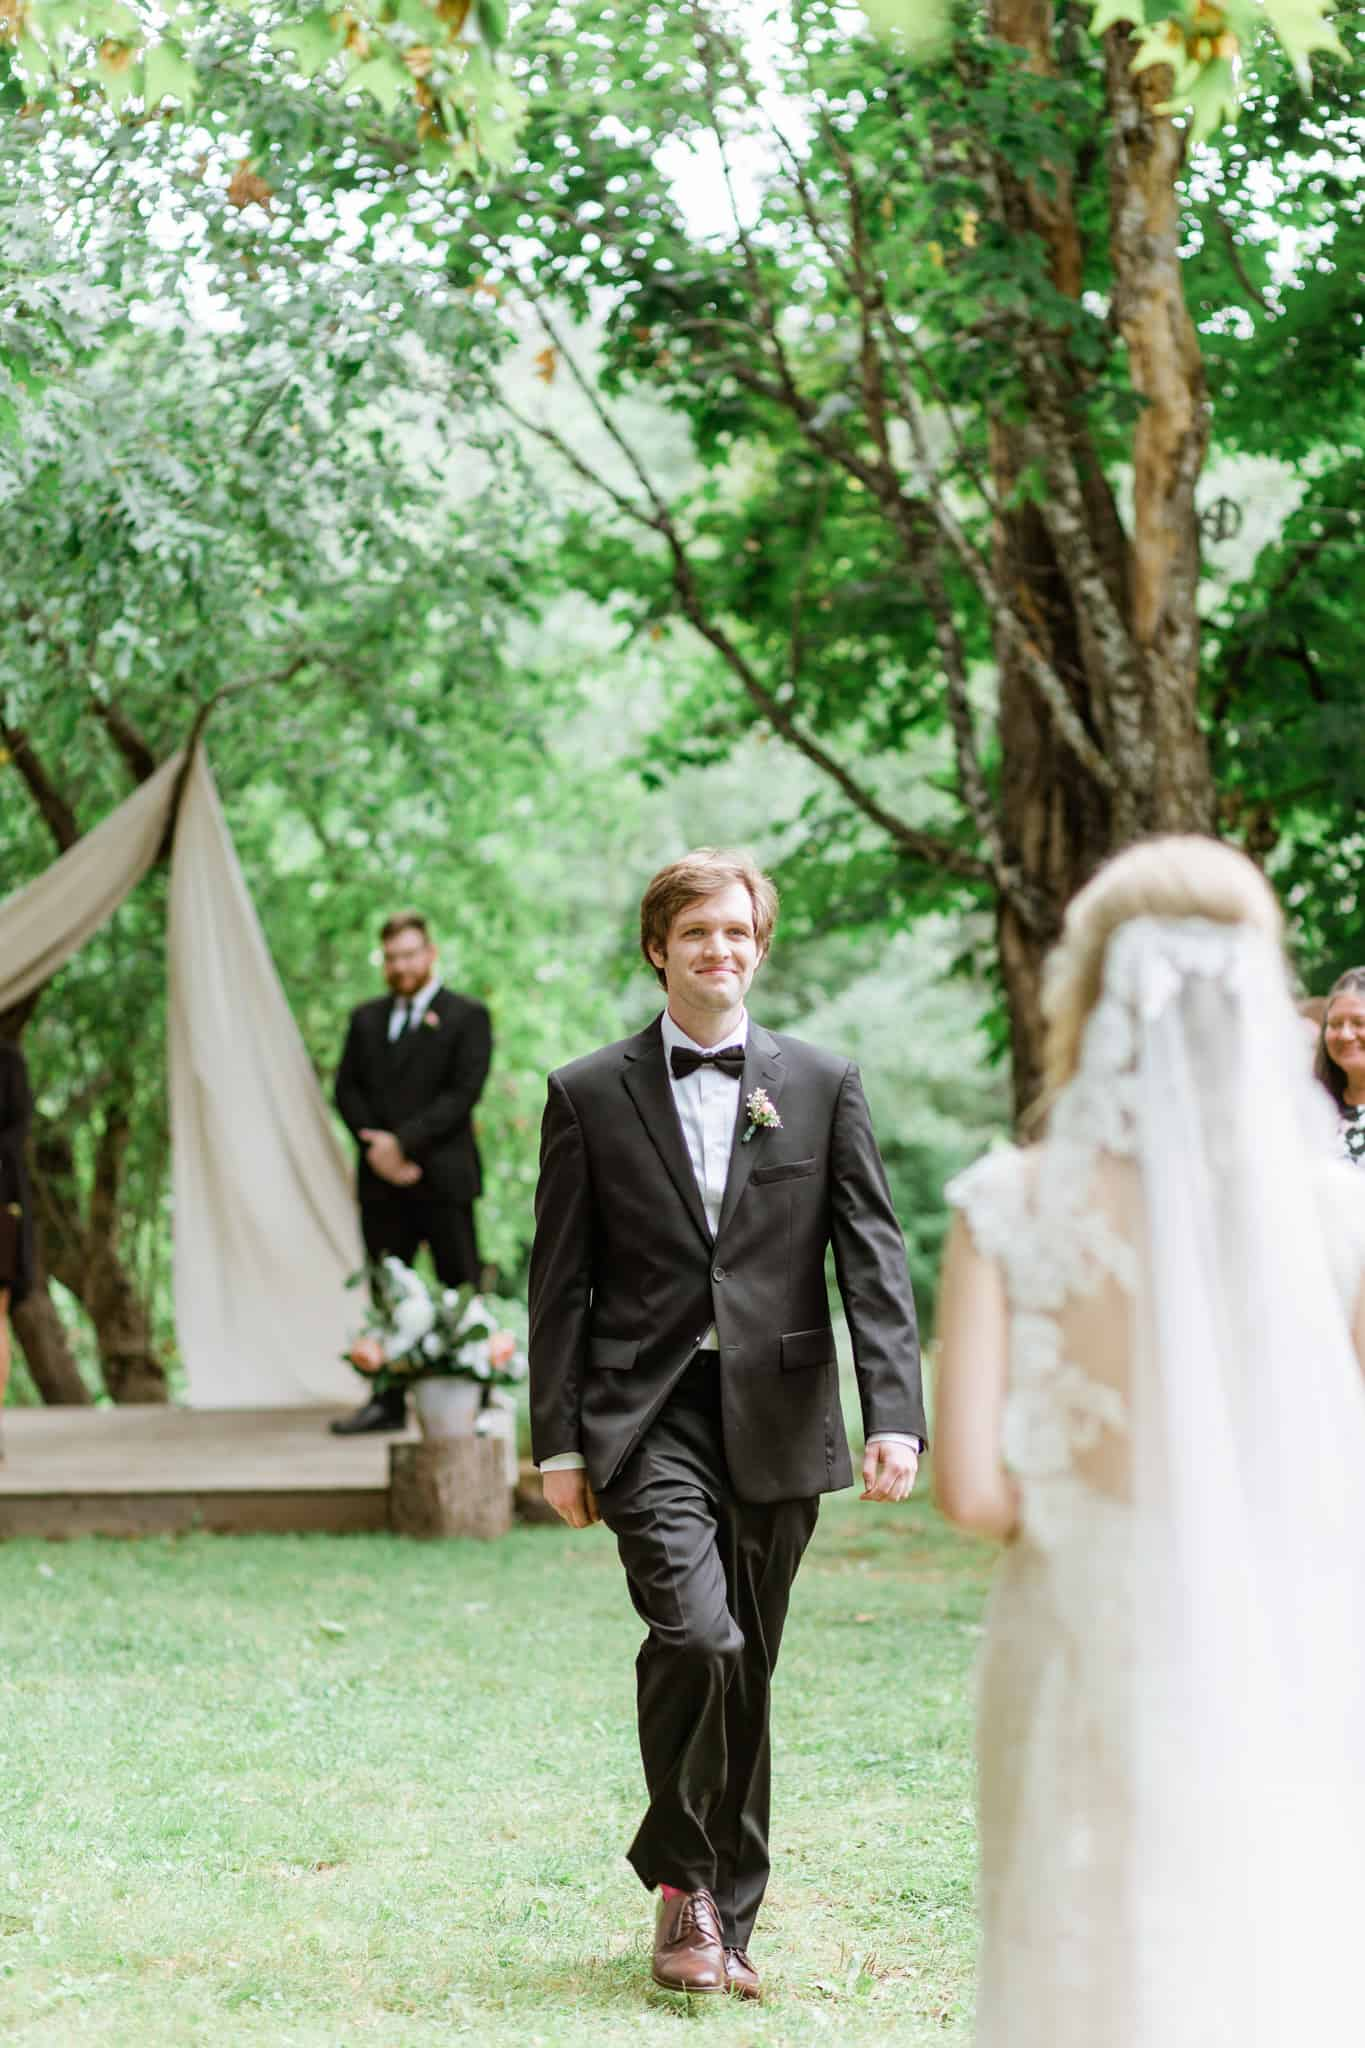 Wedding Ceremony Pictures - Memorable Moments You Won't Forget!